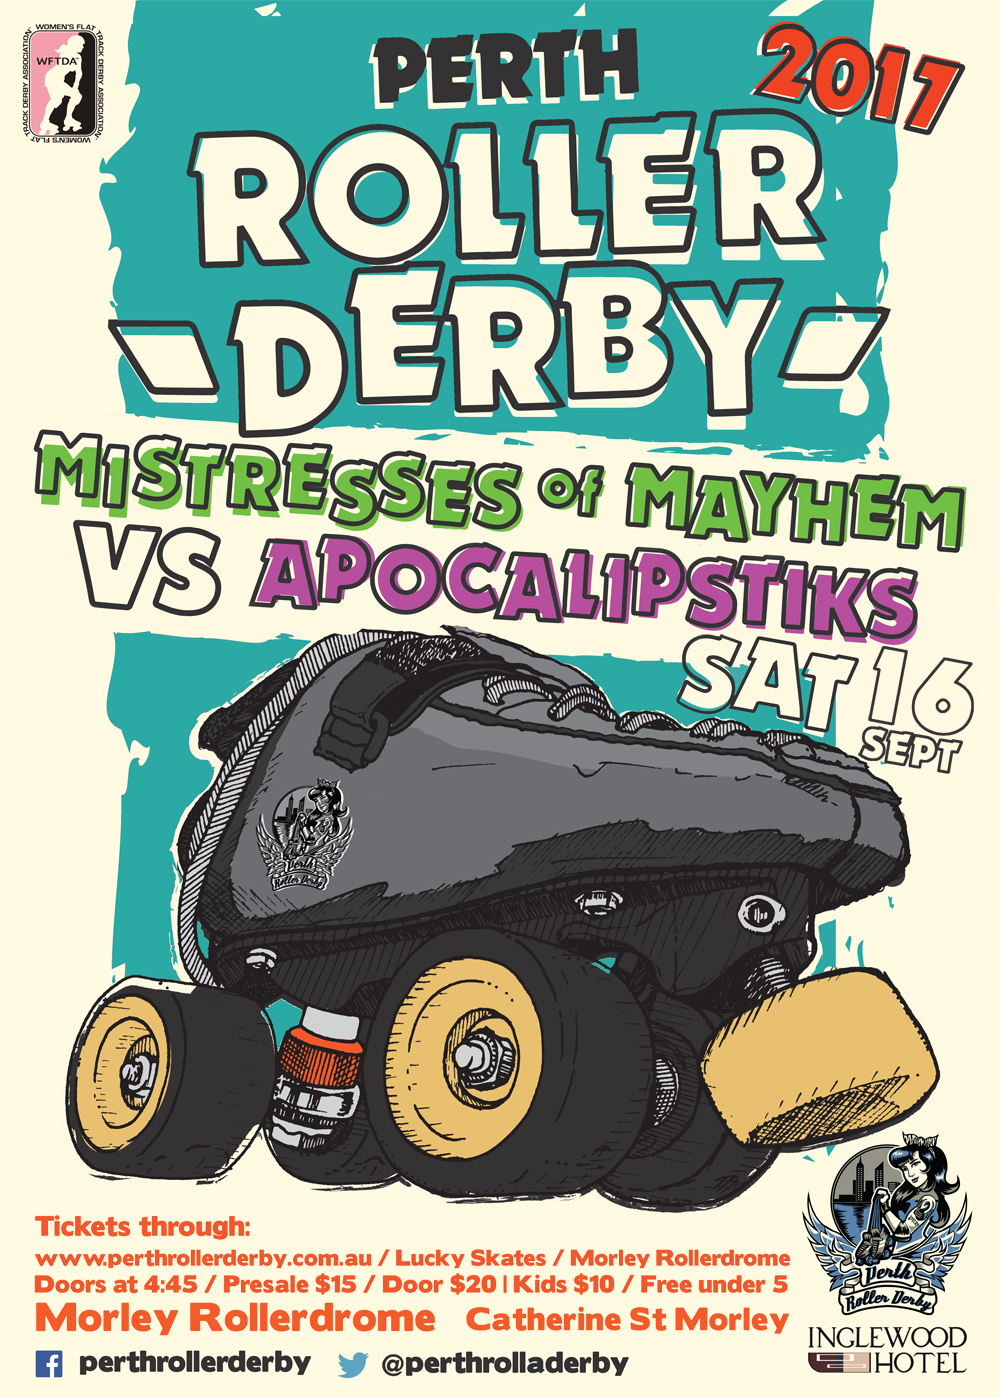 Perth Roller Derby 2017 : Game #5